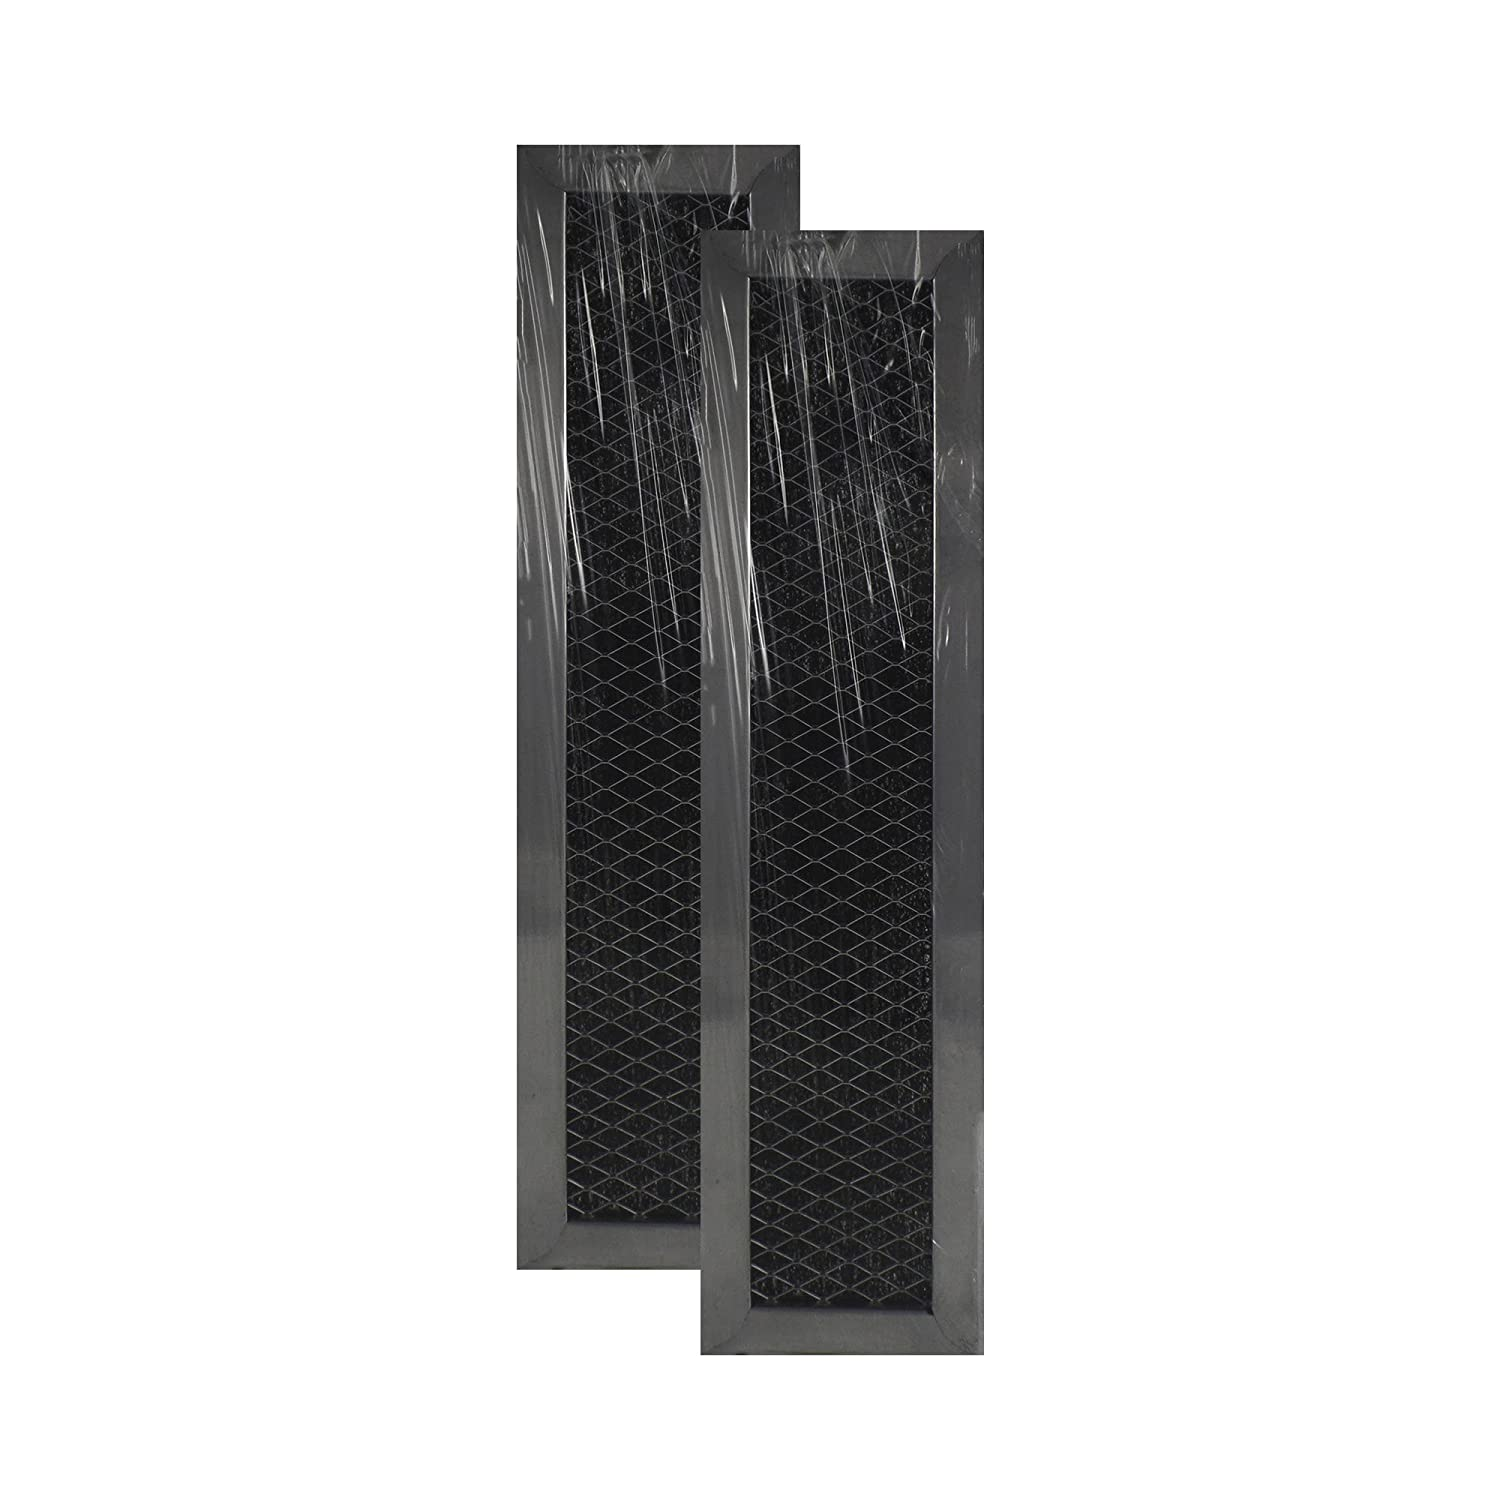 2 Pack Air Filter Factory Compatible Replacement for Frigidaire 5304464577 Microwave Oven Charcoal Carbon Filter AFF51-CH